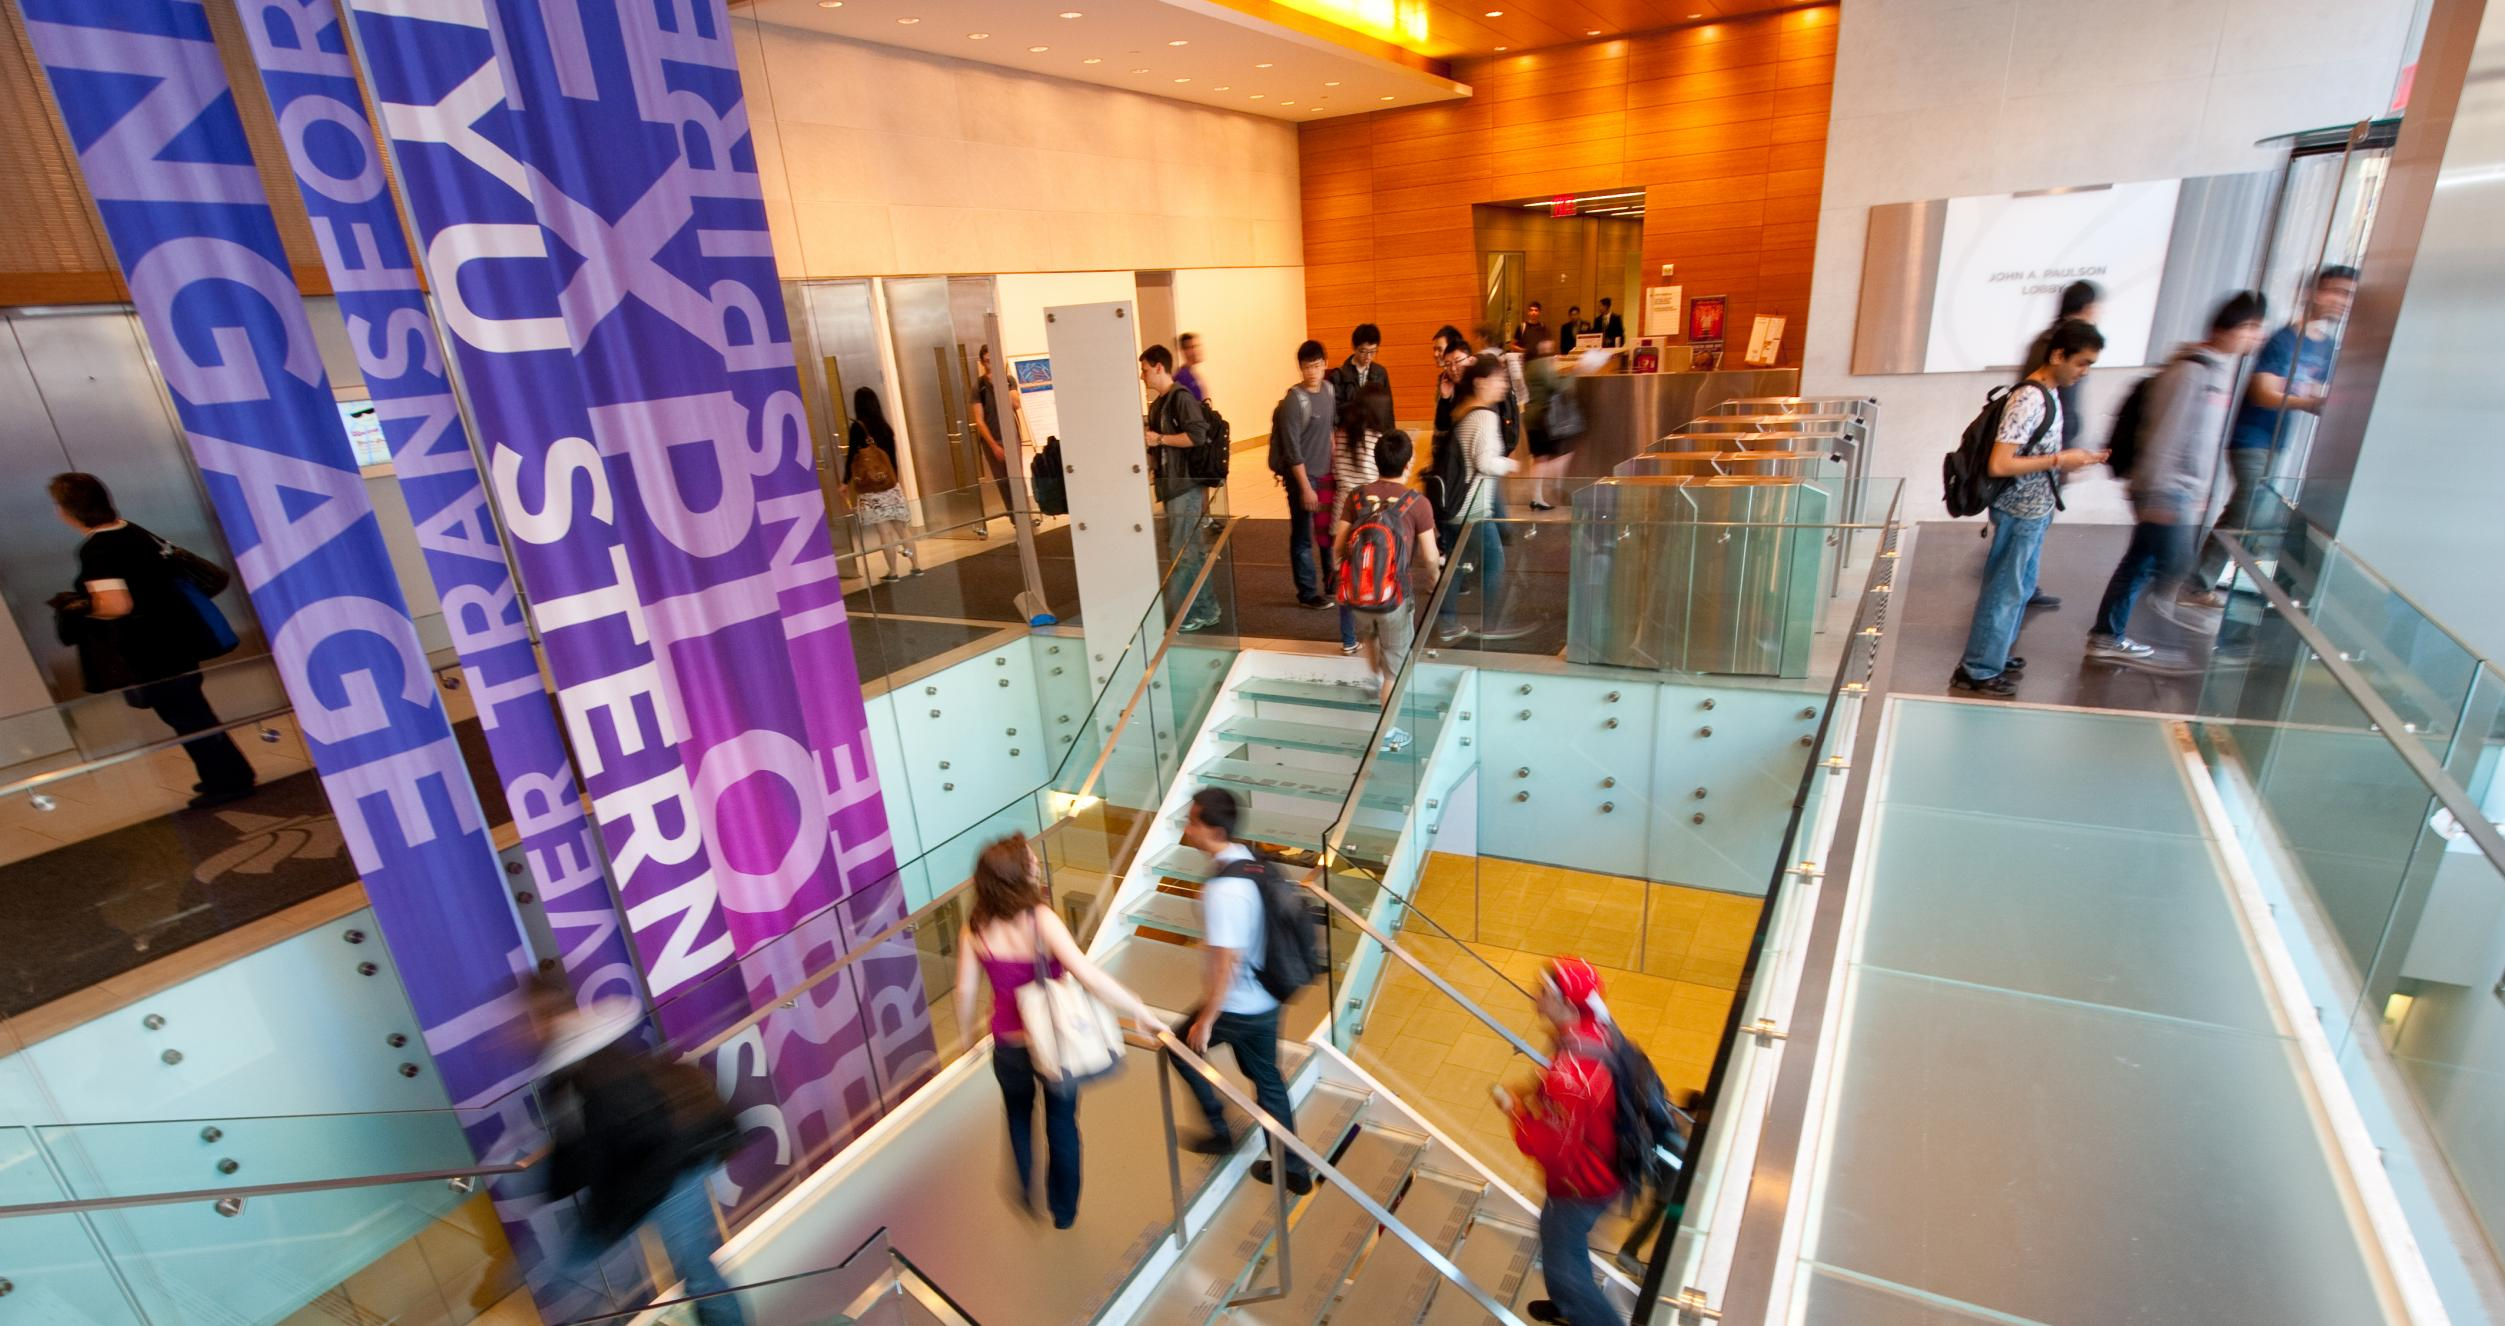 Students walking up the stairs in NYU Stern's Tisch Lobby